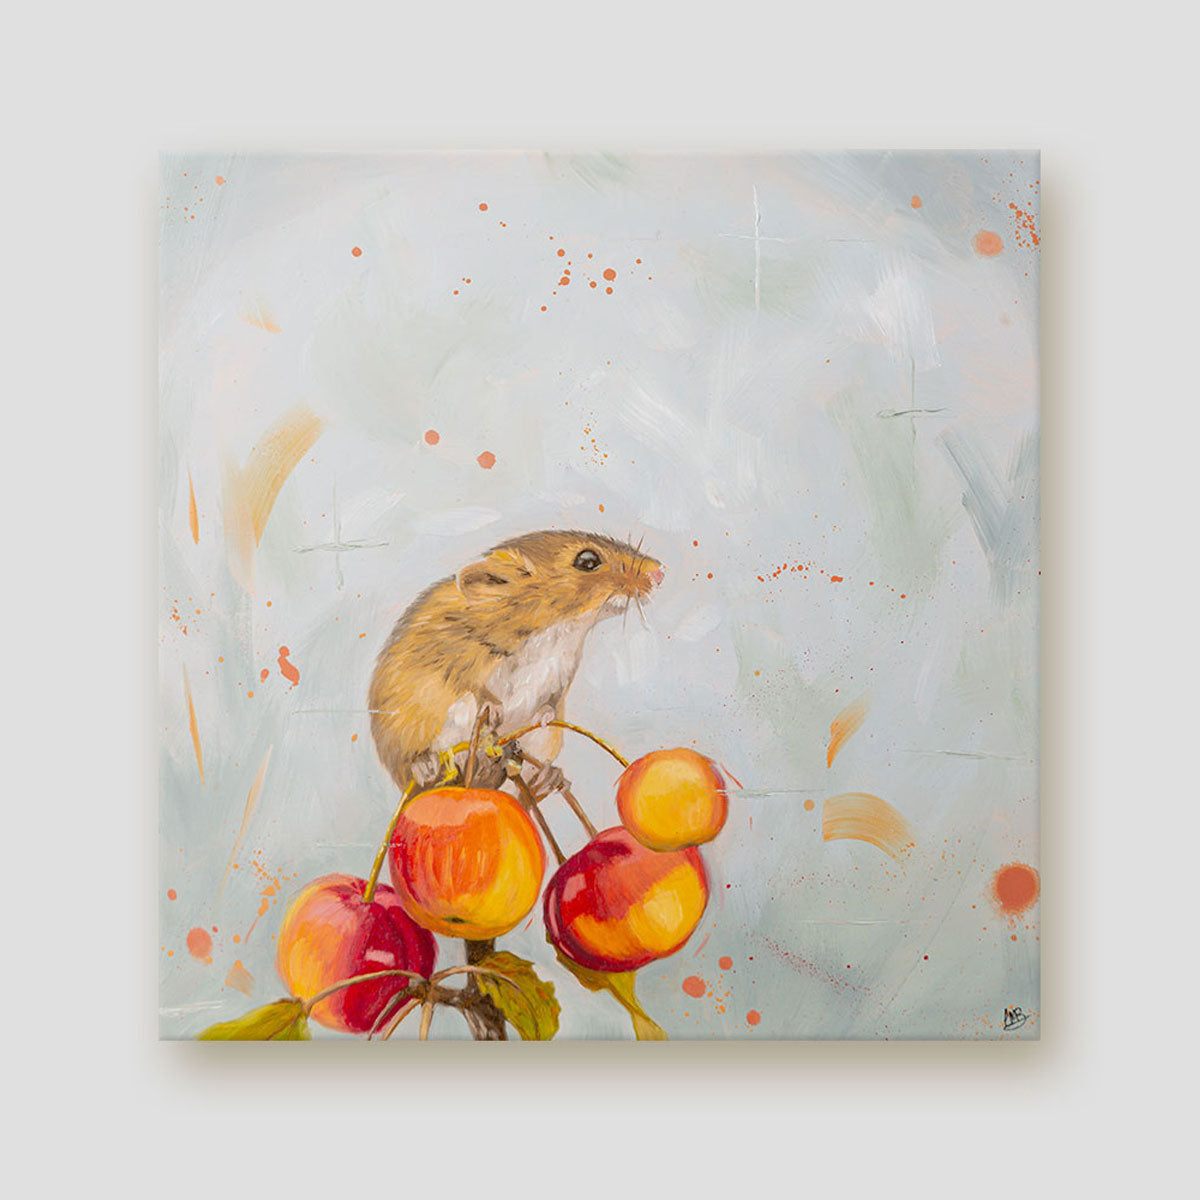 Cherry picked harvest mouse canvas